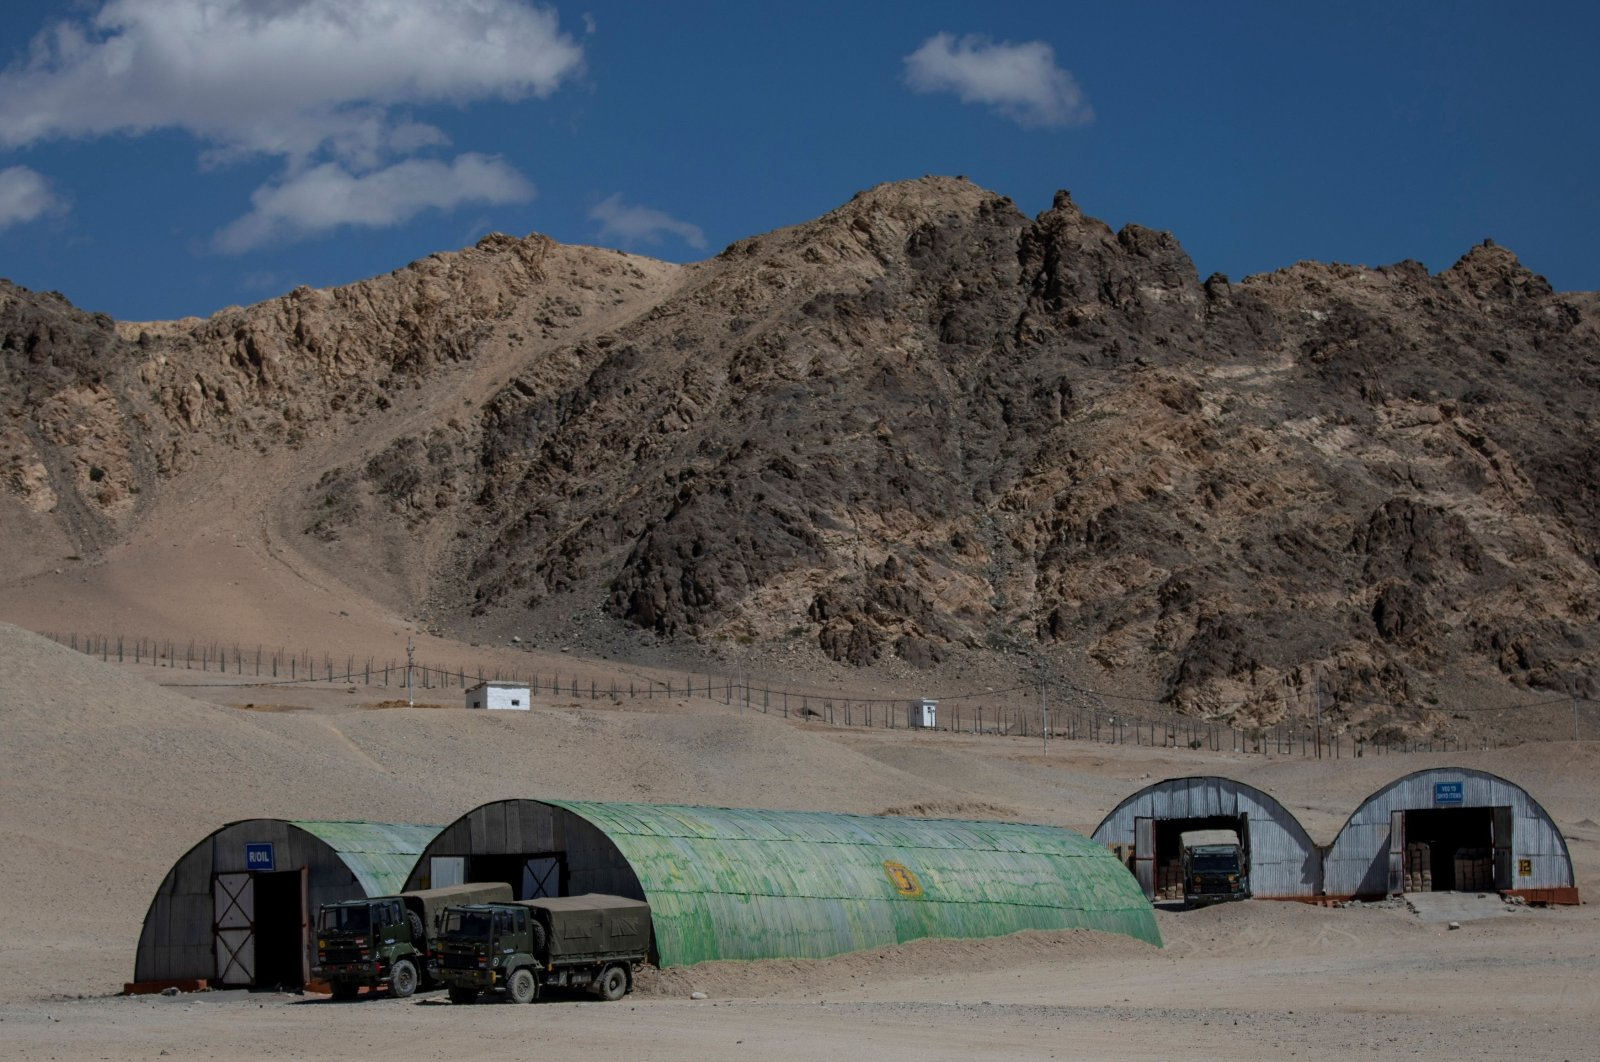 Military trucks are parked outside the storage facilities at a supply depot in Leh, in the Indian-controlled Ladakh region, Sept. 15, 2020. (REUTERS Photo)